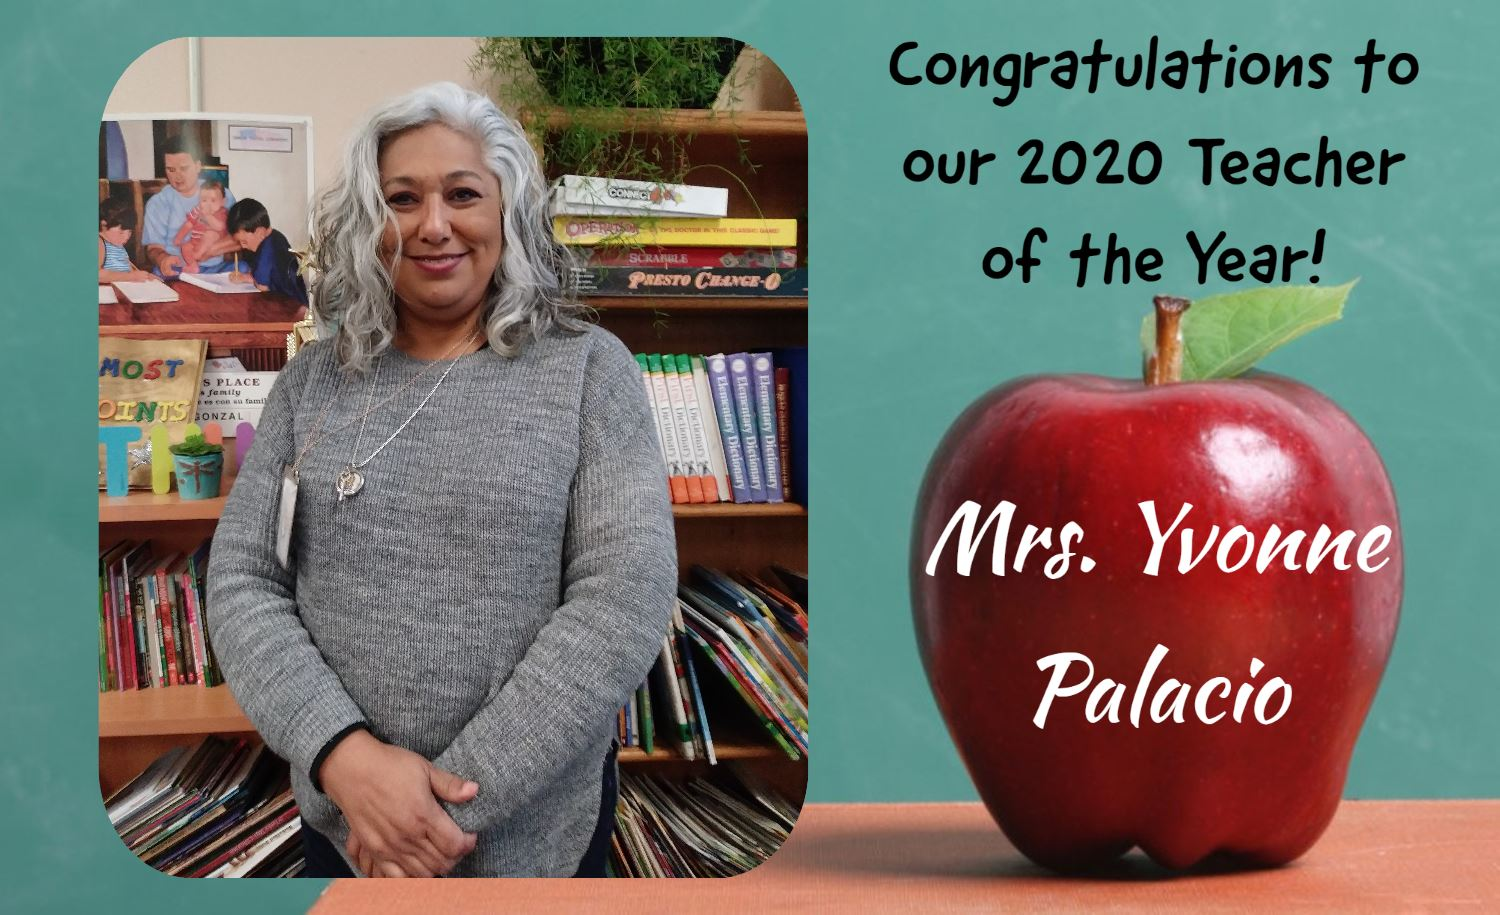 2020 Teacher of the Year!